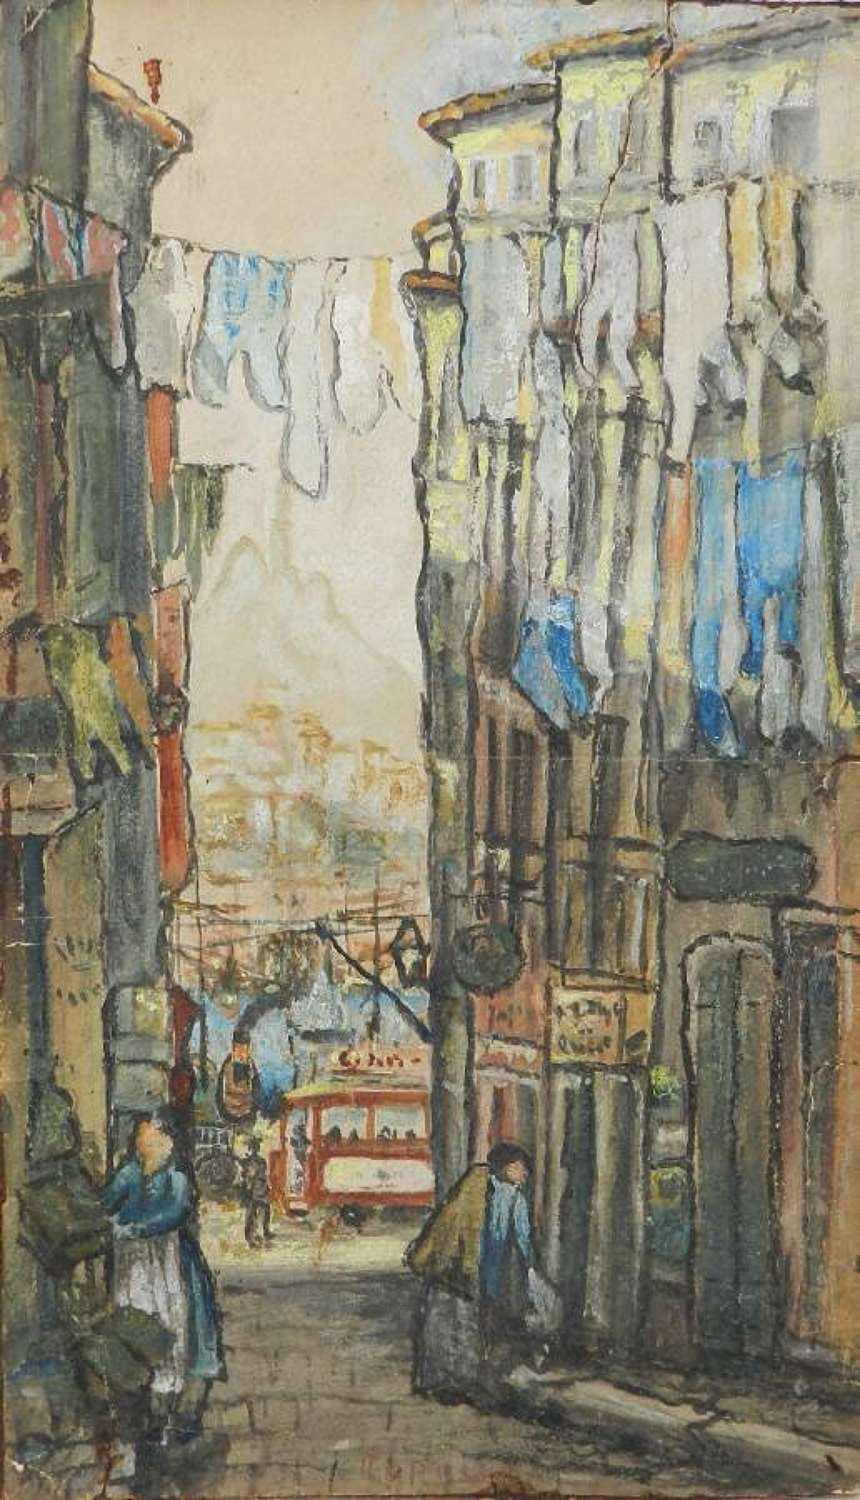 Original Painting Signed Watercolour Study of St Tropez Street Scene to Port by Alfred de La Rocca 1855-1915 French